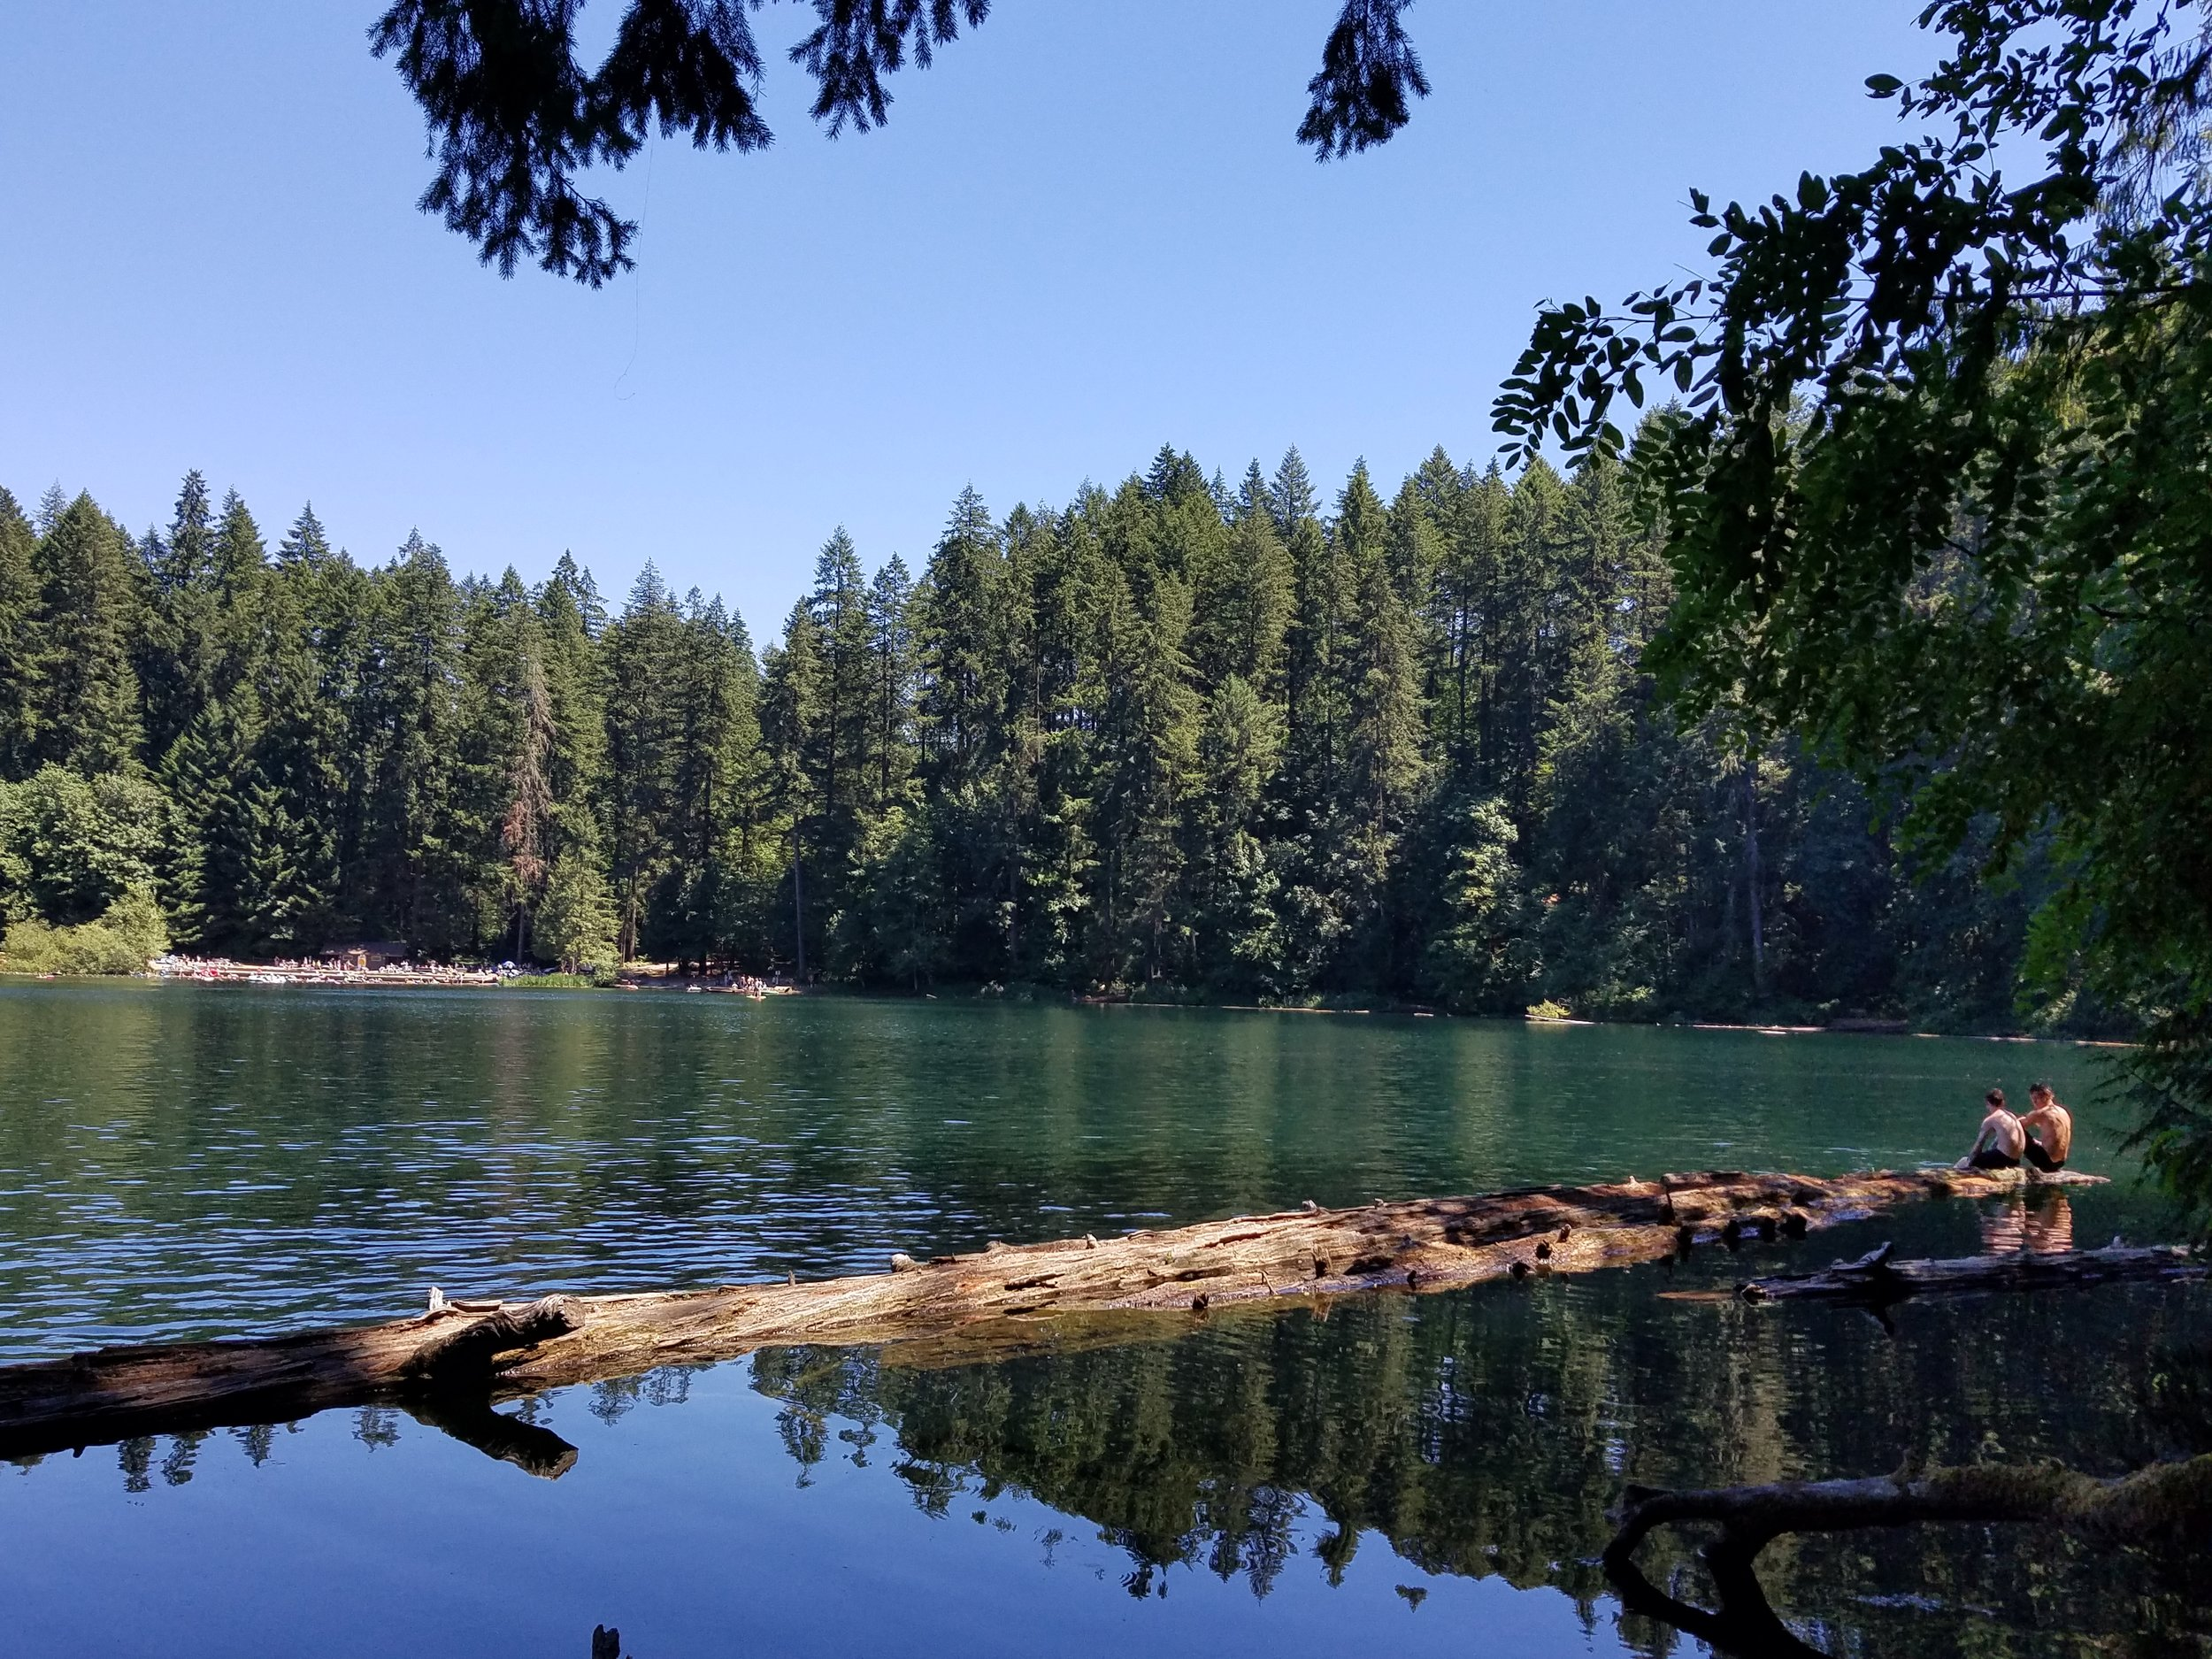 Battle Ground Lake on July 12, 2018 . This lovely 27-acre crater lake is 4 miles northeast of Battle Ground, WA, in Battle Ground State Park. (Photo by M. M. Ruth)